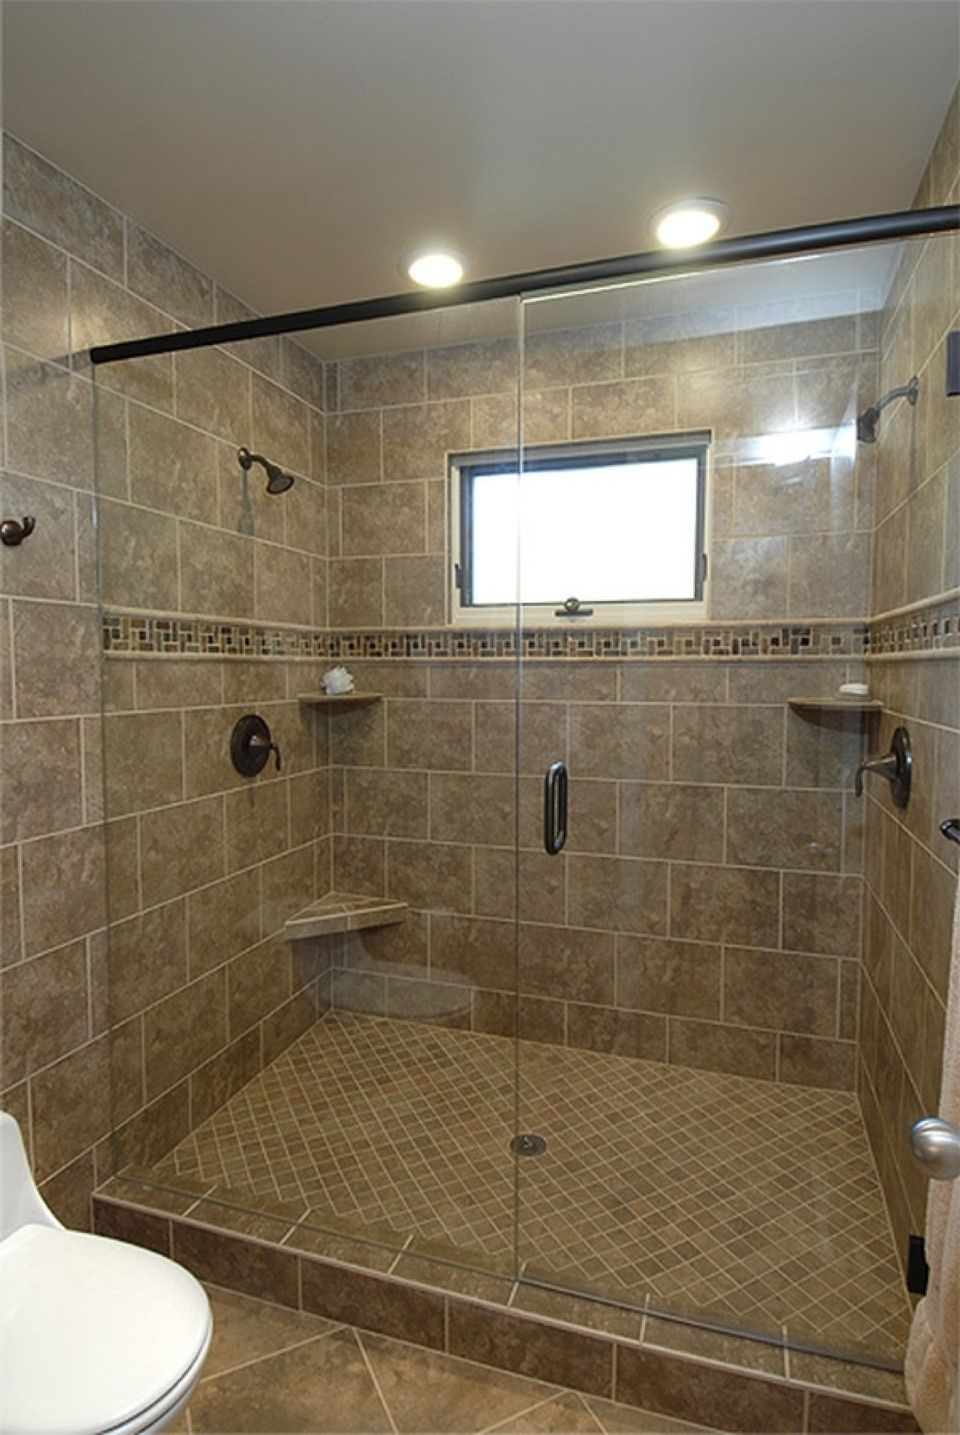 Showers With Bullnose Around Window Google Search Bathroom Remodel Shower Bathroom Remodel Designs Bathroom Design